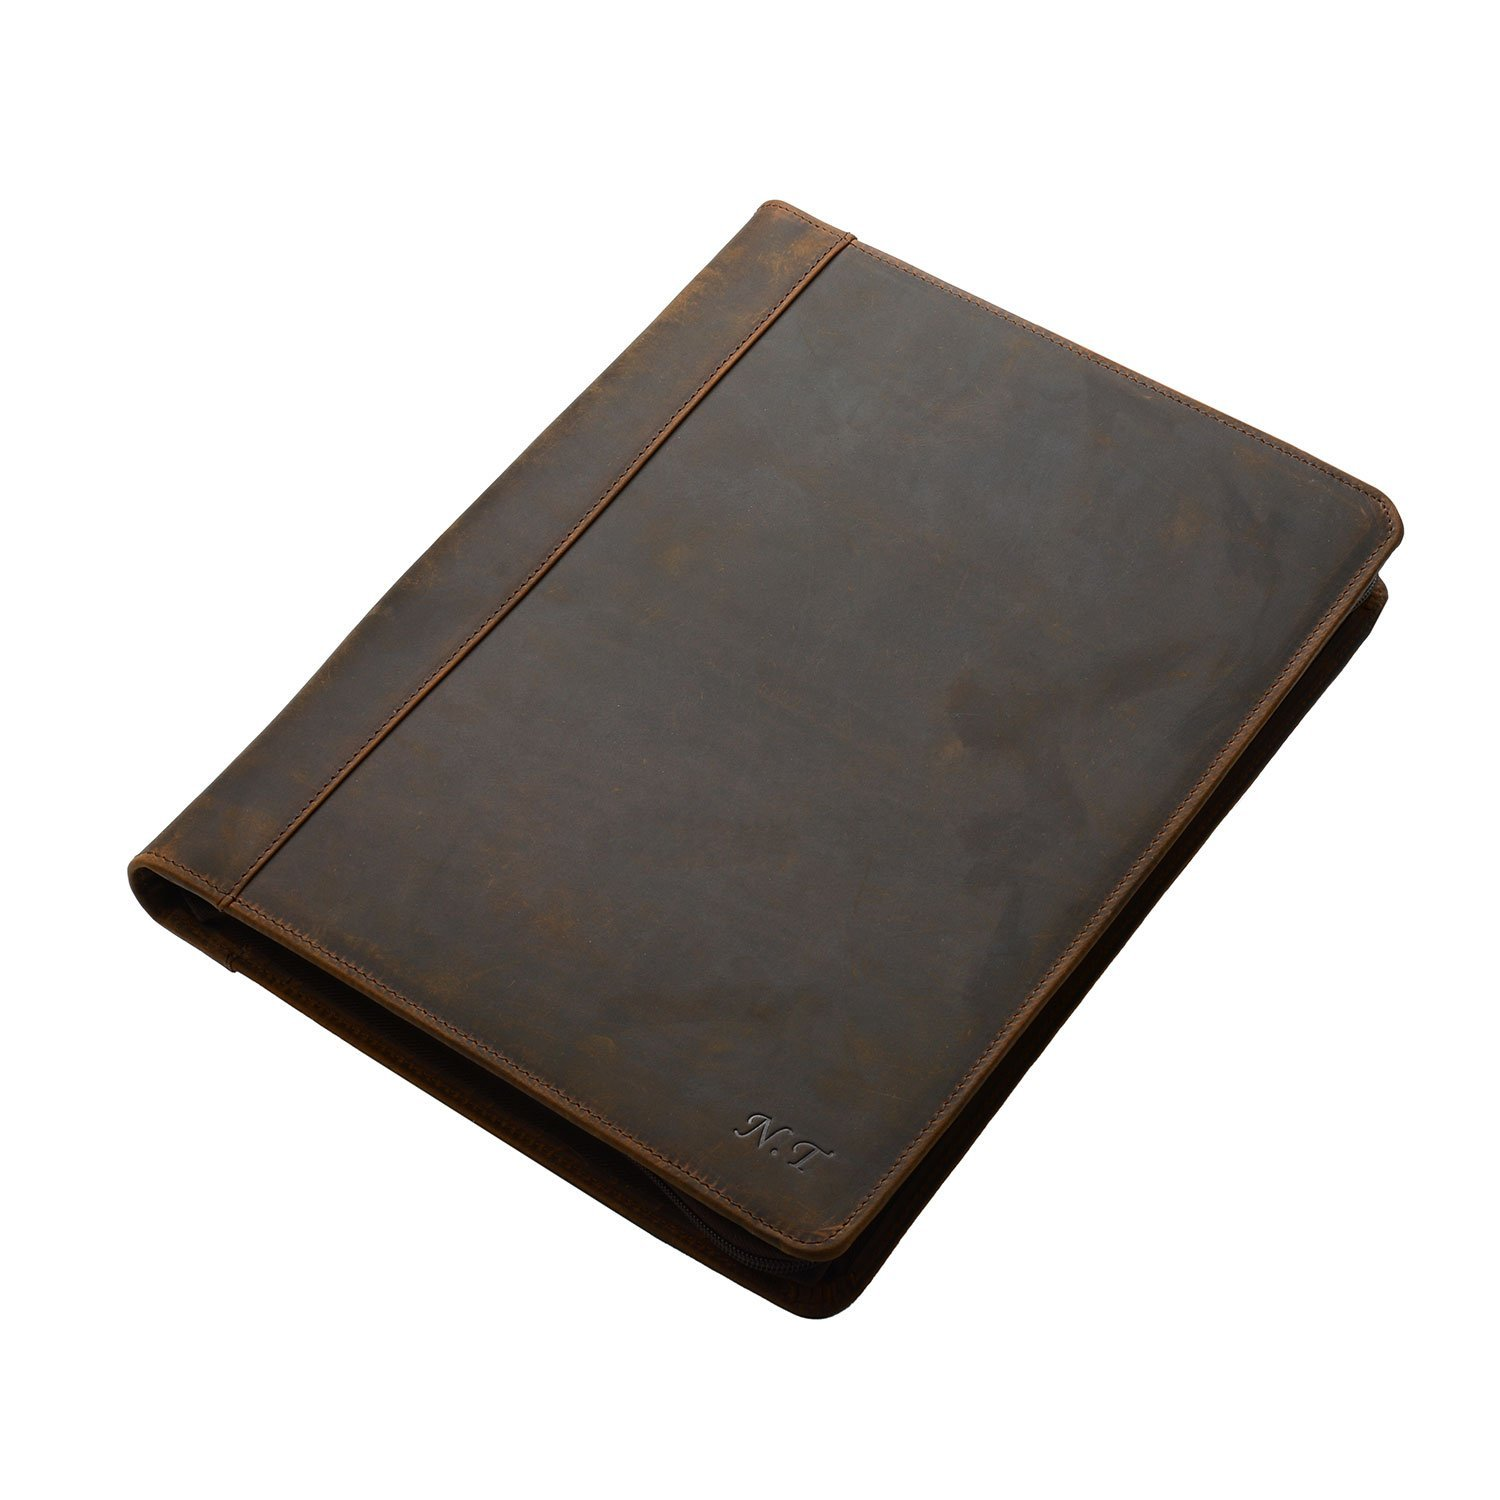 Personalize Rustic Leather Organizer Laptop Portfolio with Notepad Holder for 13 inch Surface Book/MacBook Air, Brown